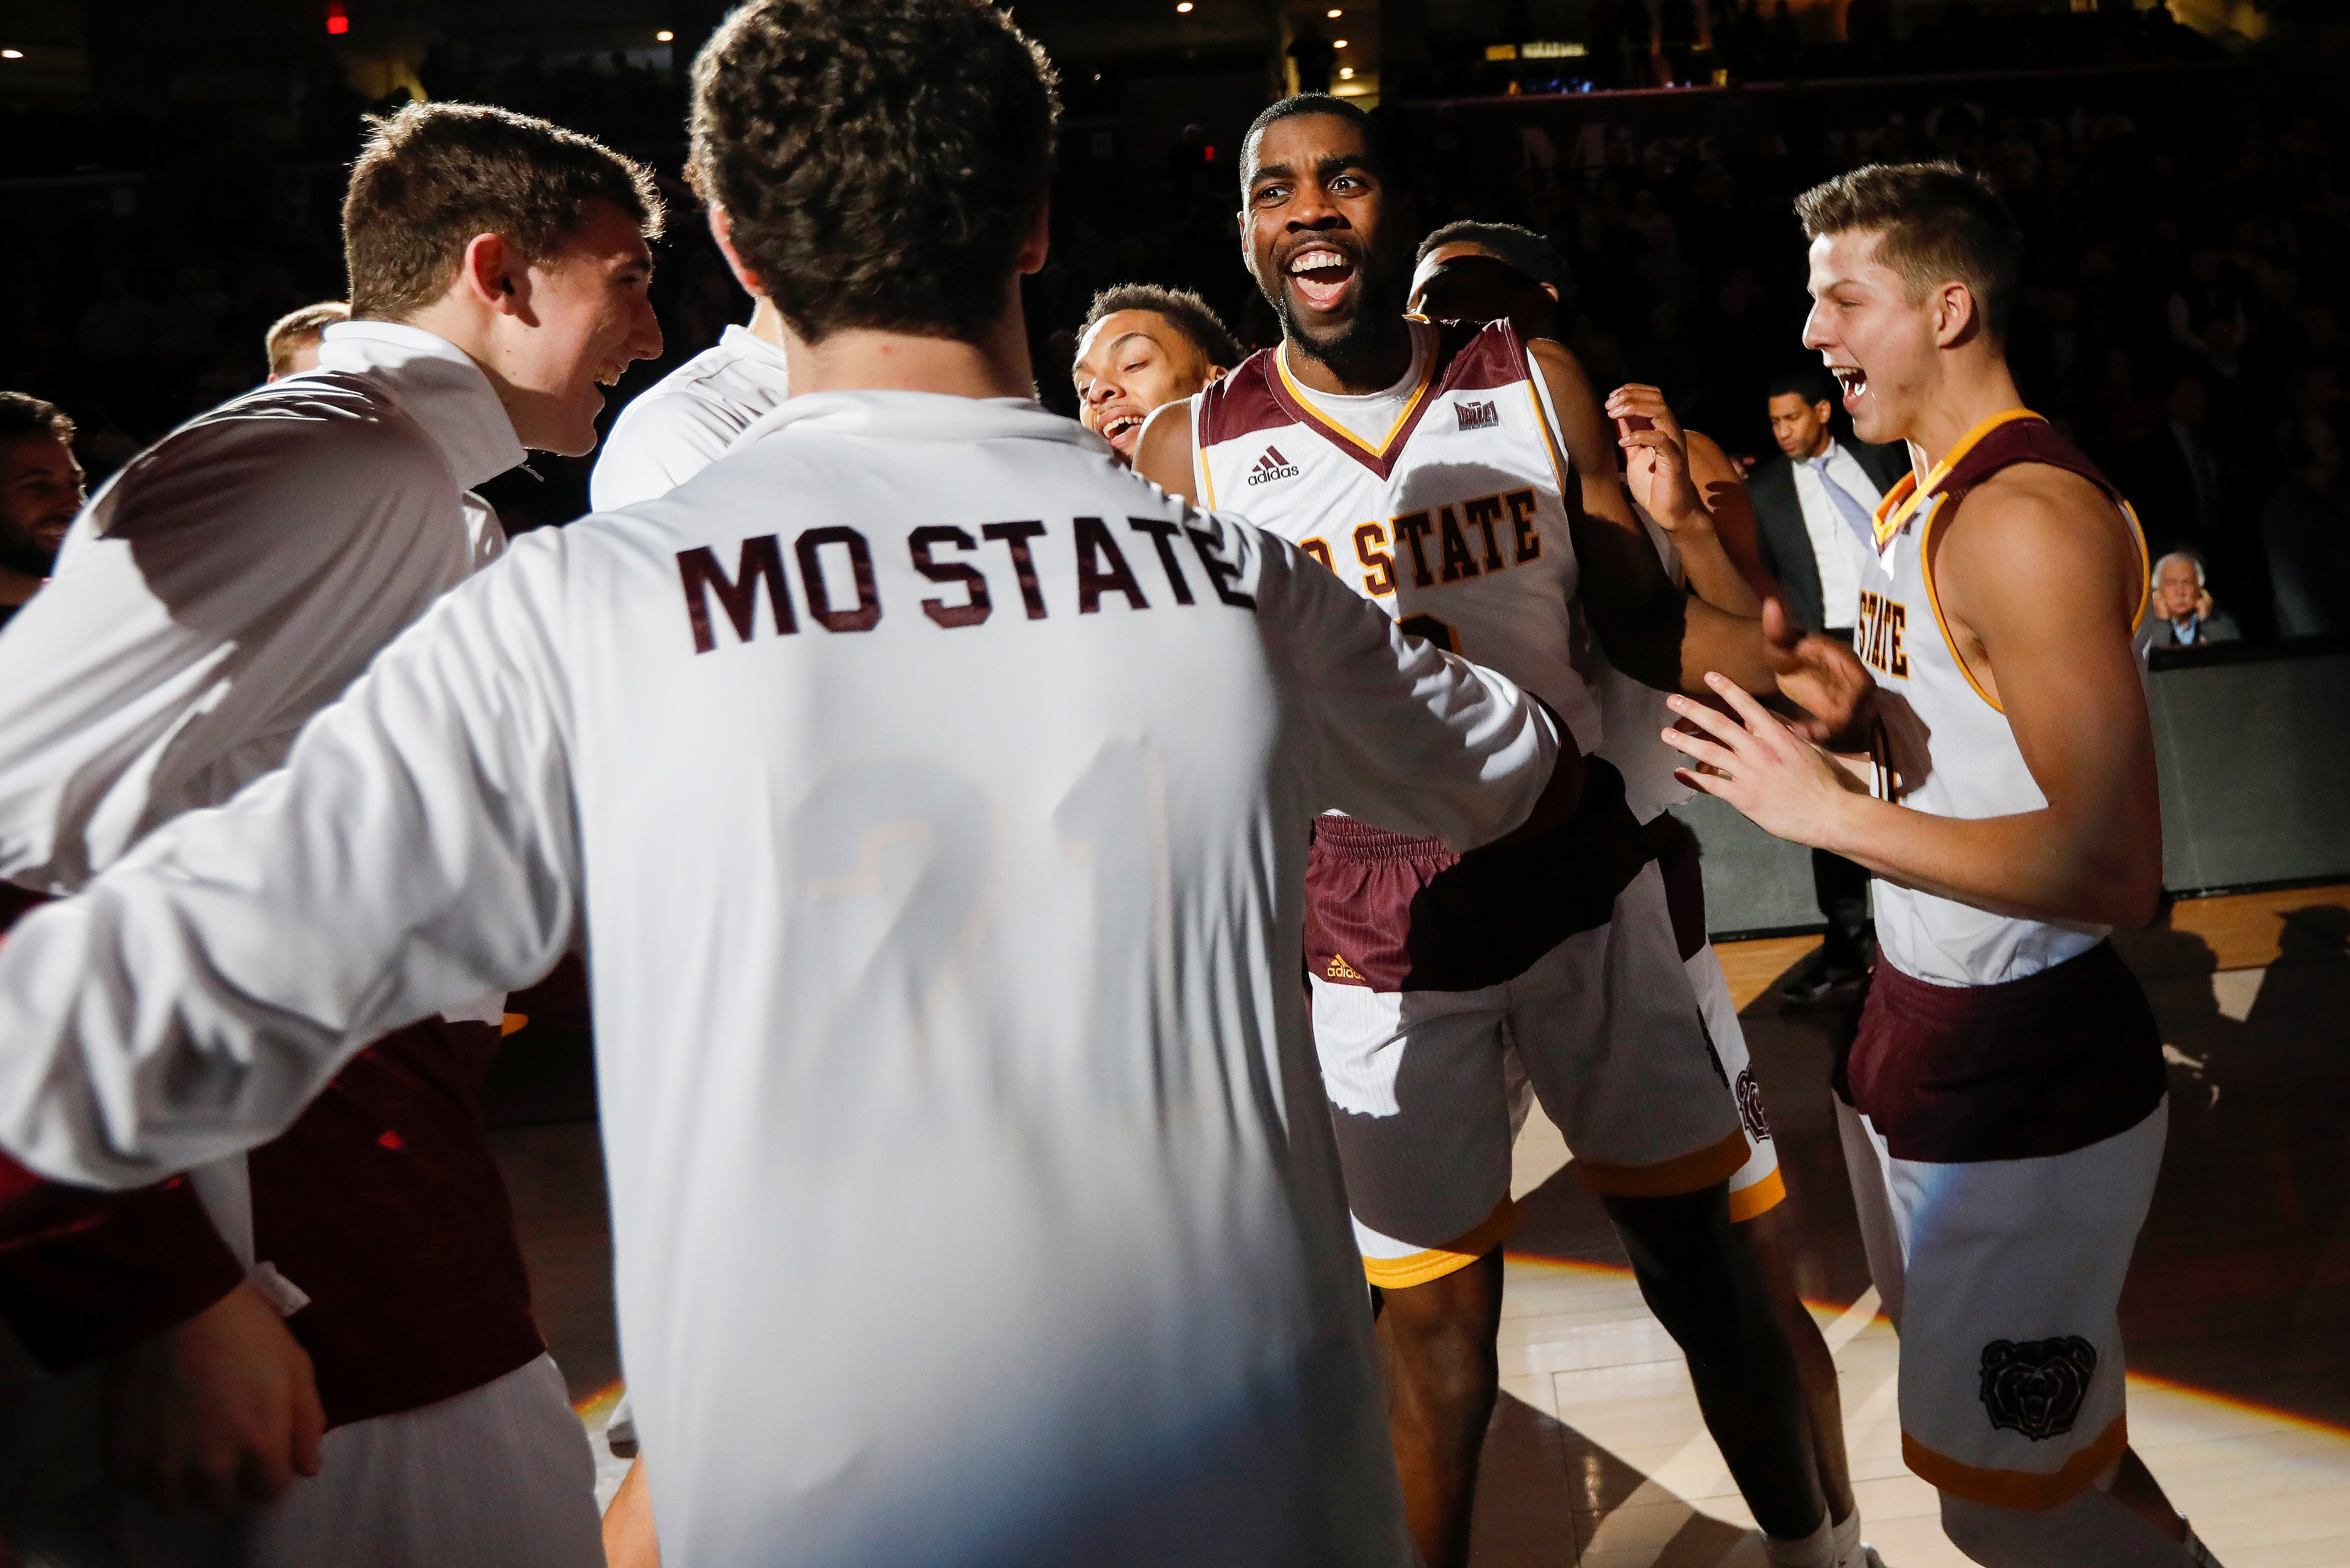 Missouri State defeated Loyola 70-35 at JQH Arena on Wednesday, Jan. 23, 2019.